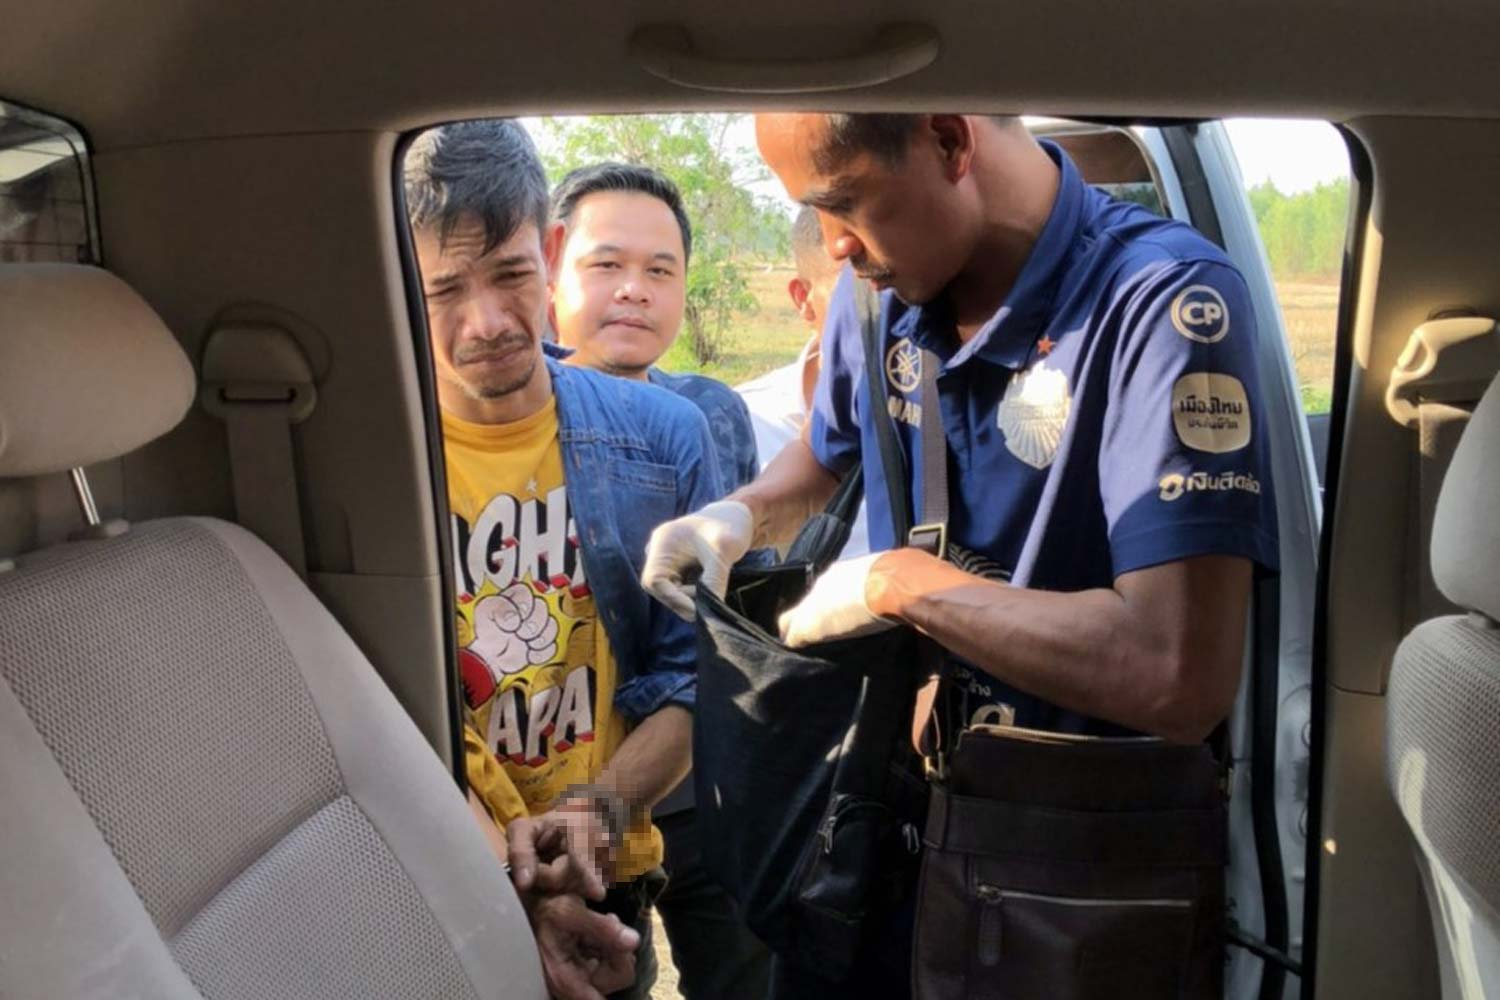 Prawit Chaikheenee, 22, left, was arrested in his car in Muang district of Buri Ram for allegedly stealing gold ornaments worth about 2 million baht from a local gold shop on Dec 28. (Photo by Surachai Piragsa)